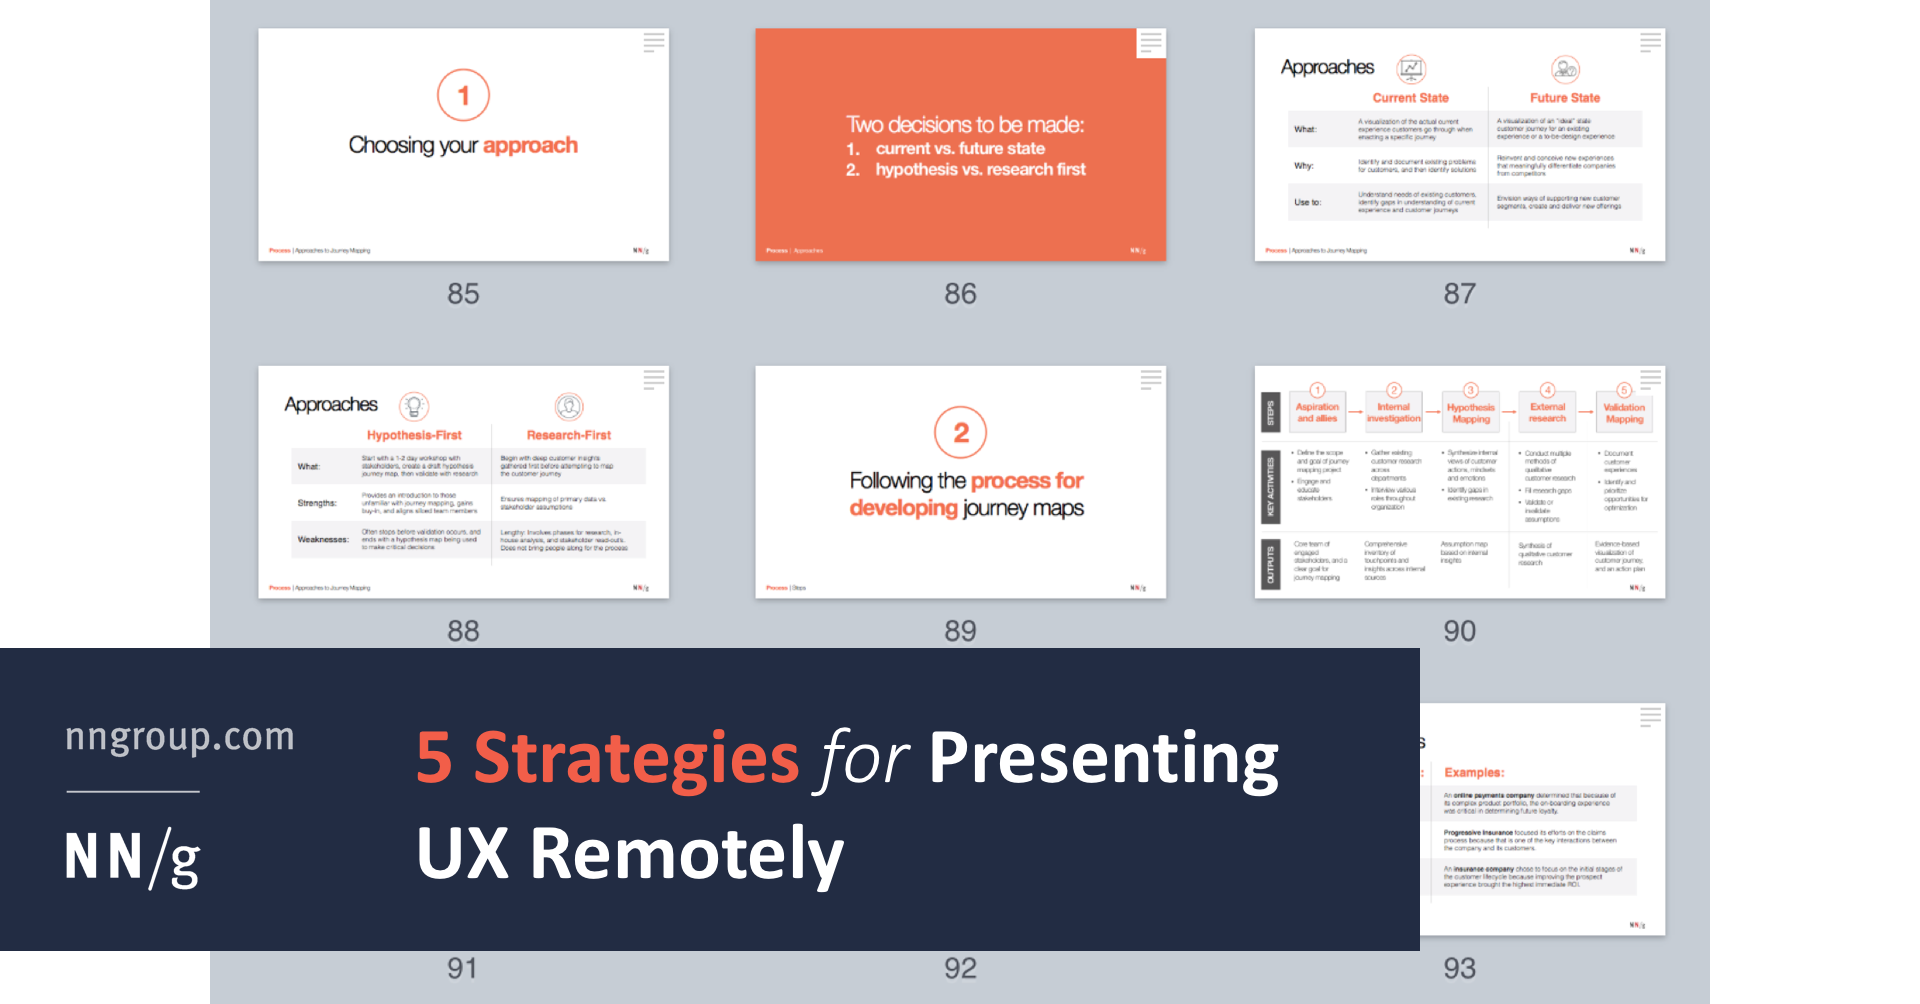 5 Strategies for Presenting UX Remotely